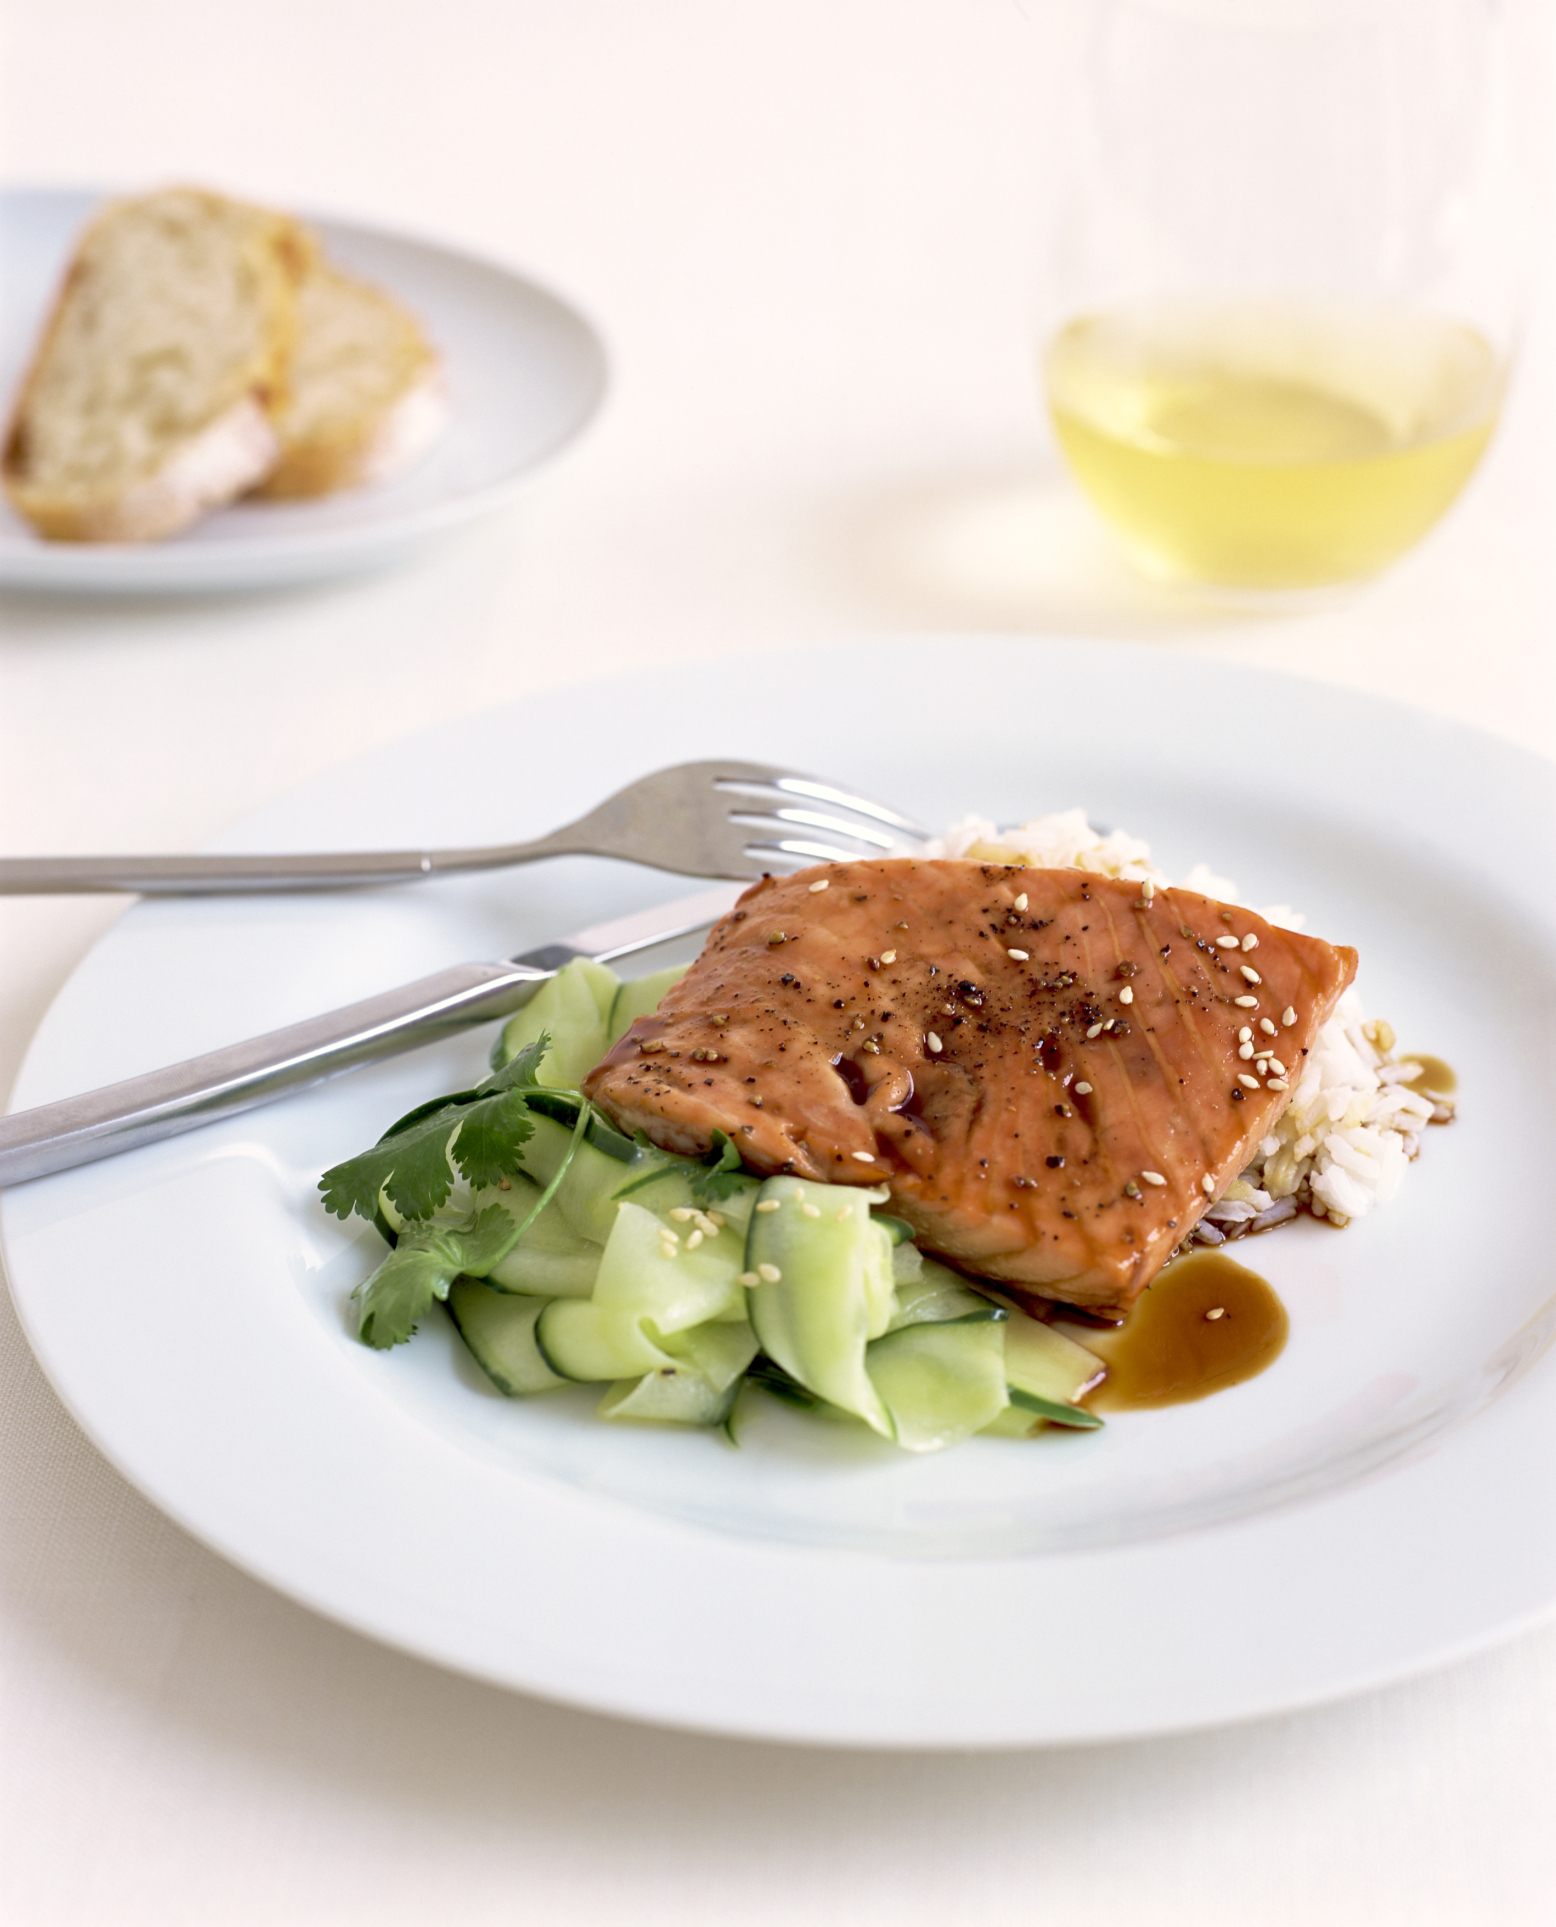 A salmon meal is a significant source of protein and potassium.